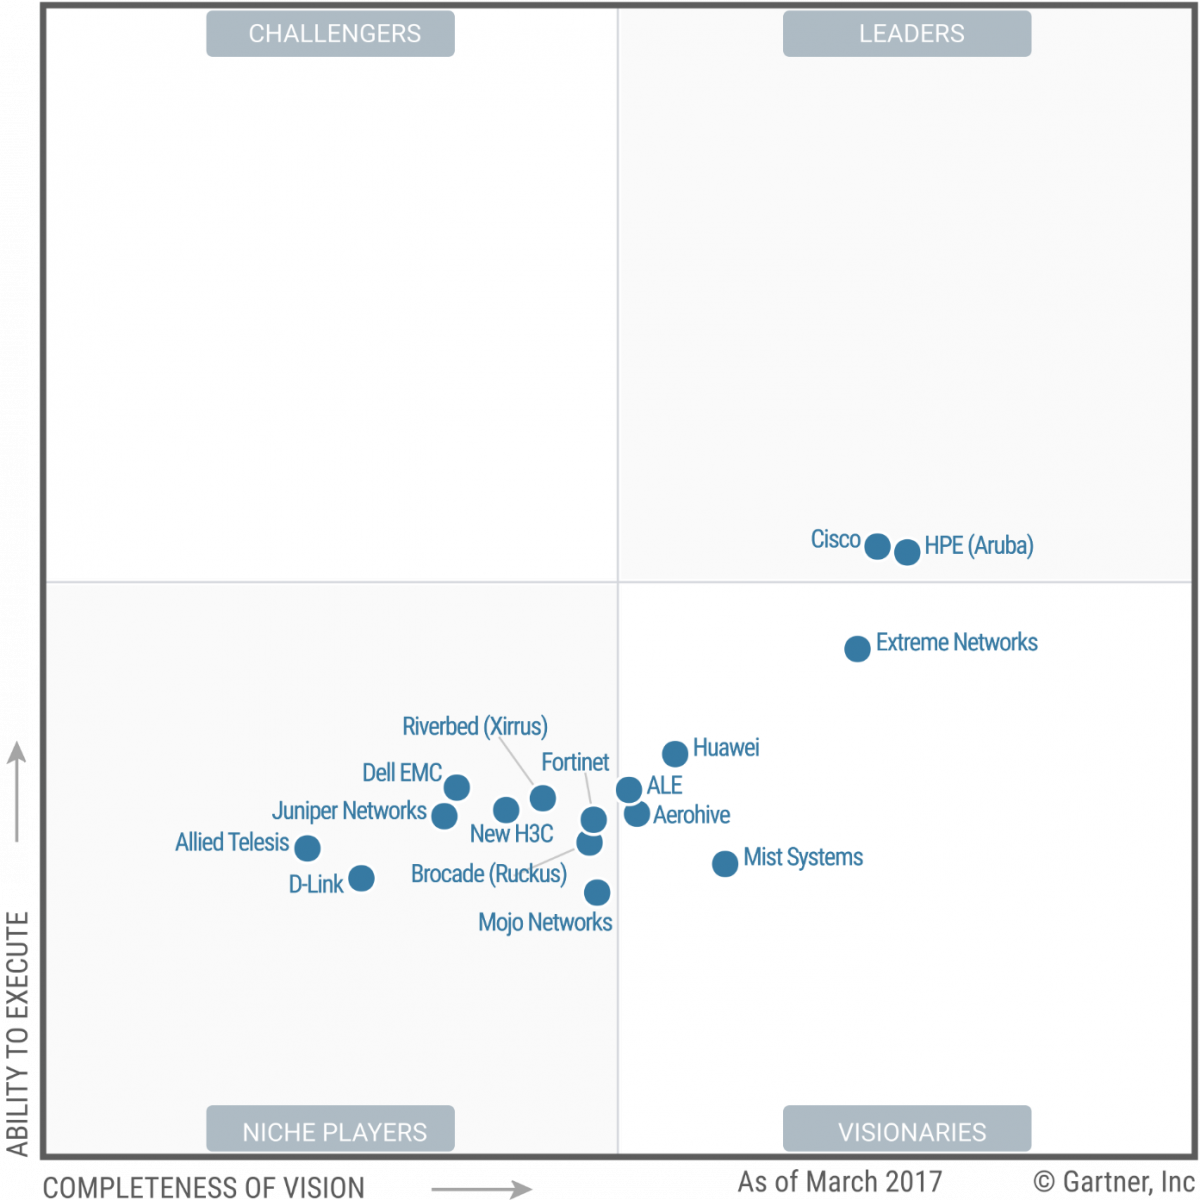 Mojo Networks in Gartner's Magic Quadrant